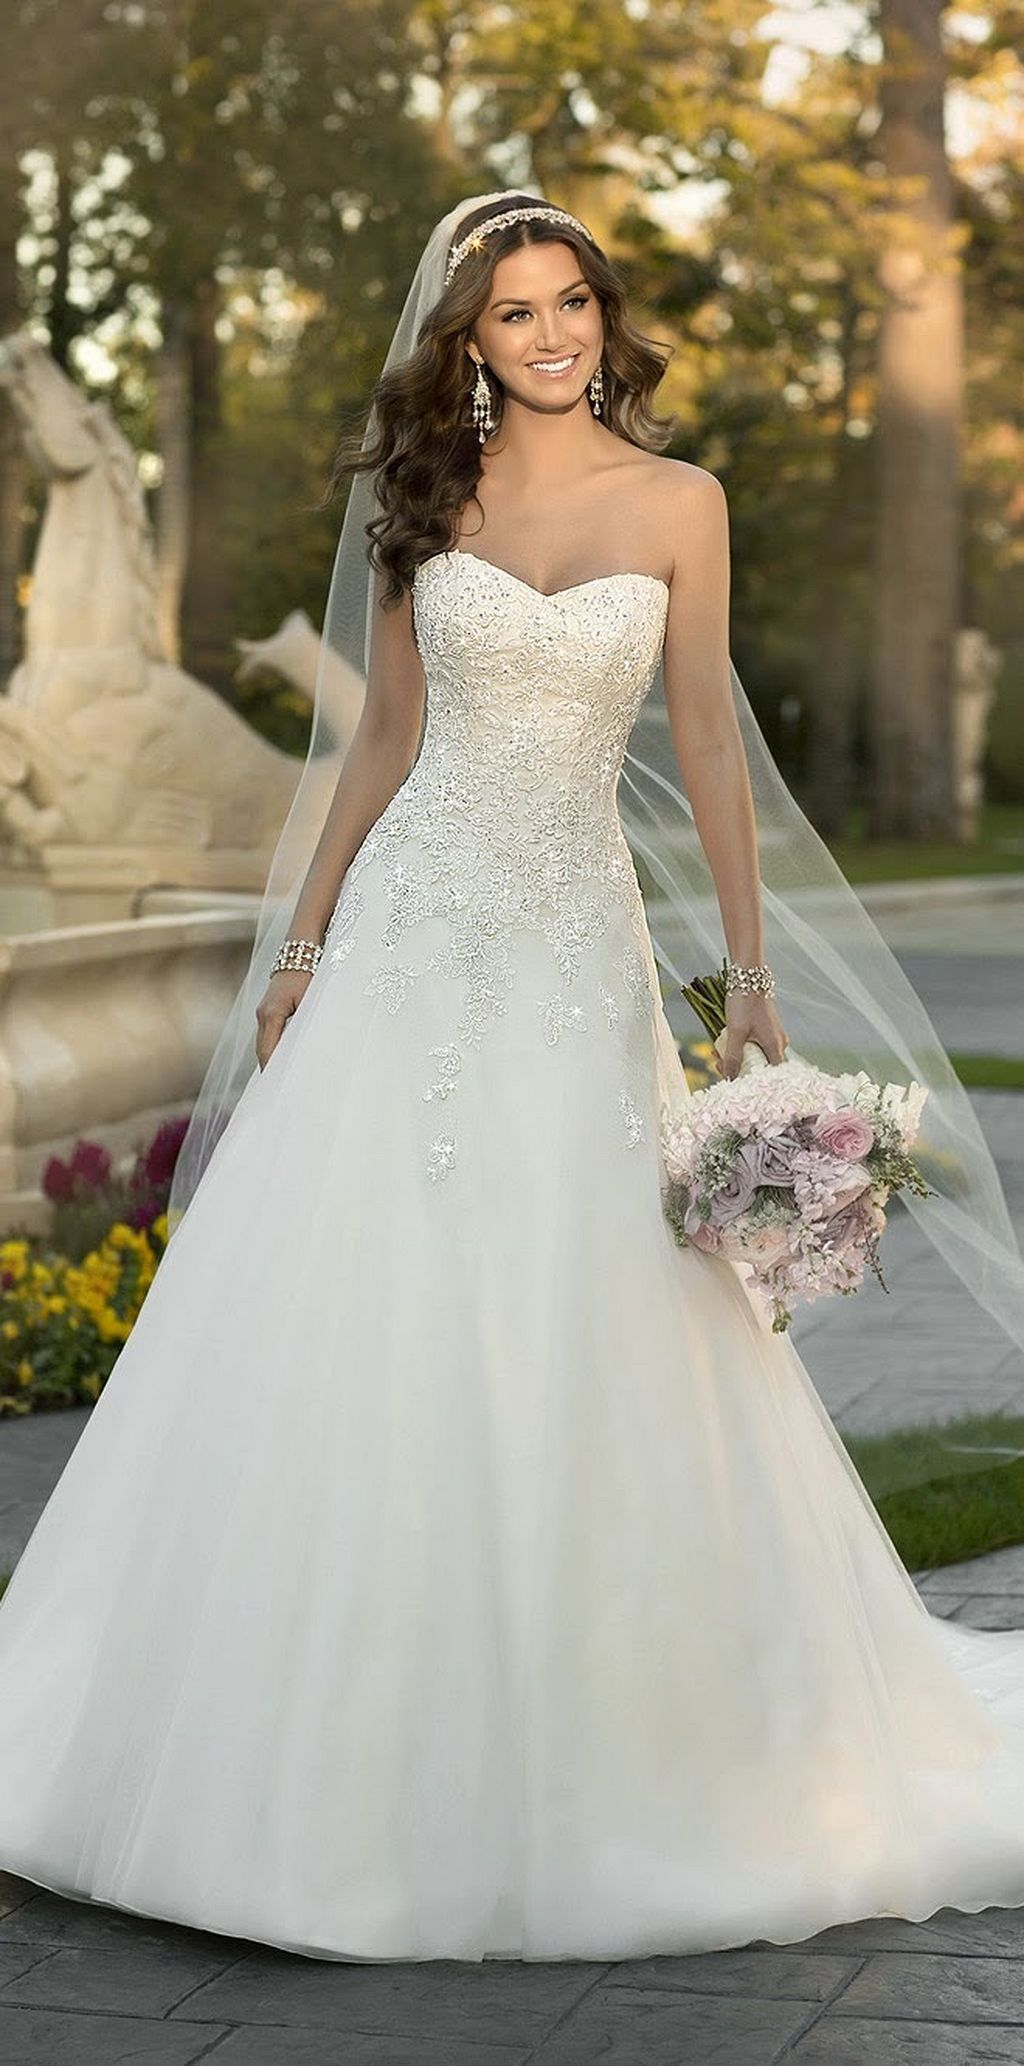 sweetheart princess wedding dress ideas princess wedding